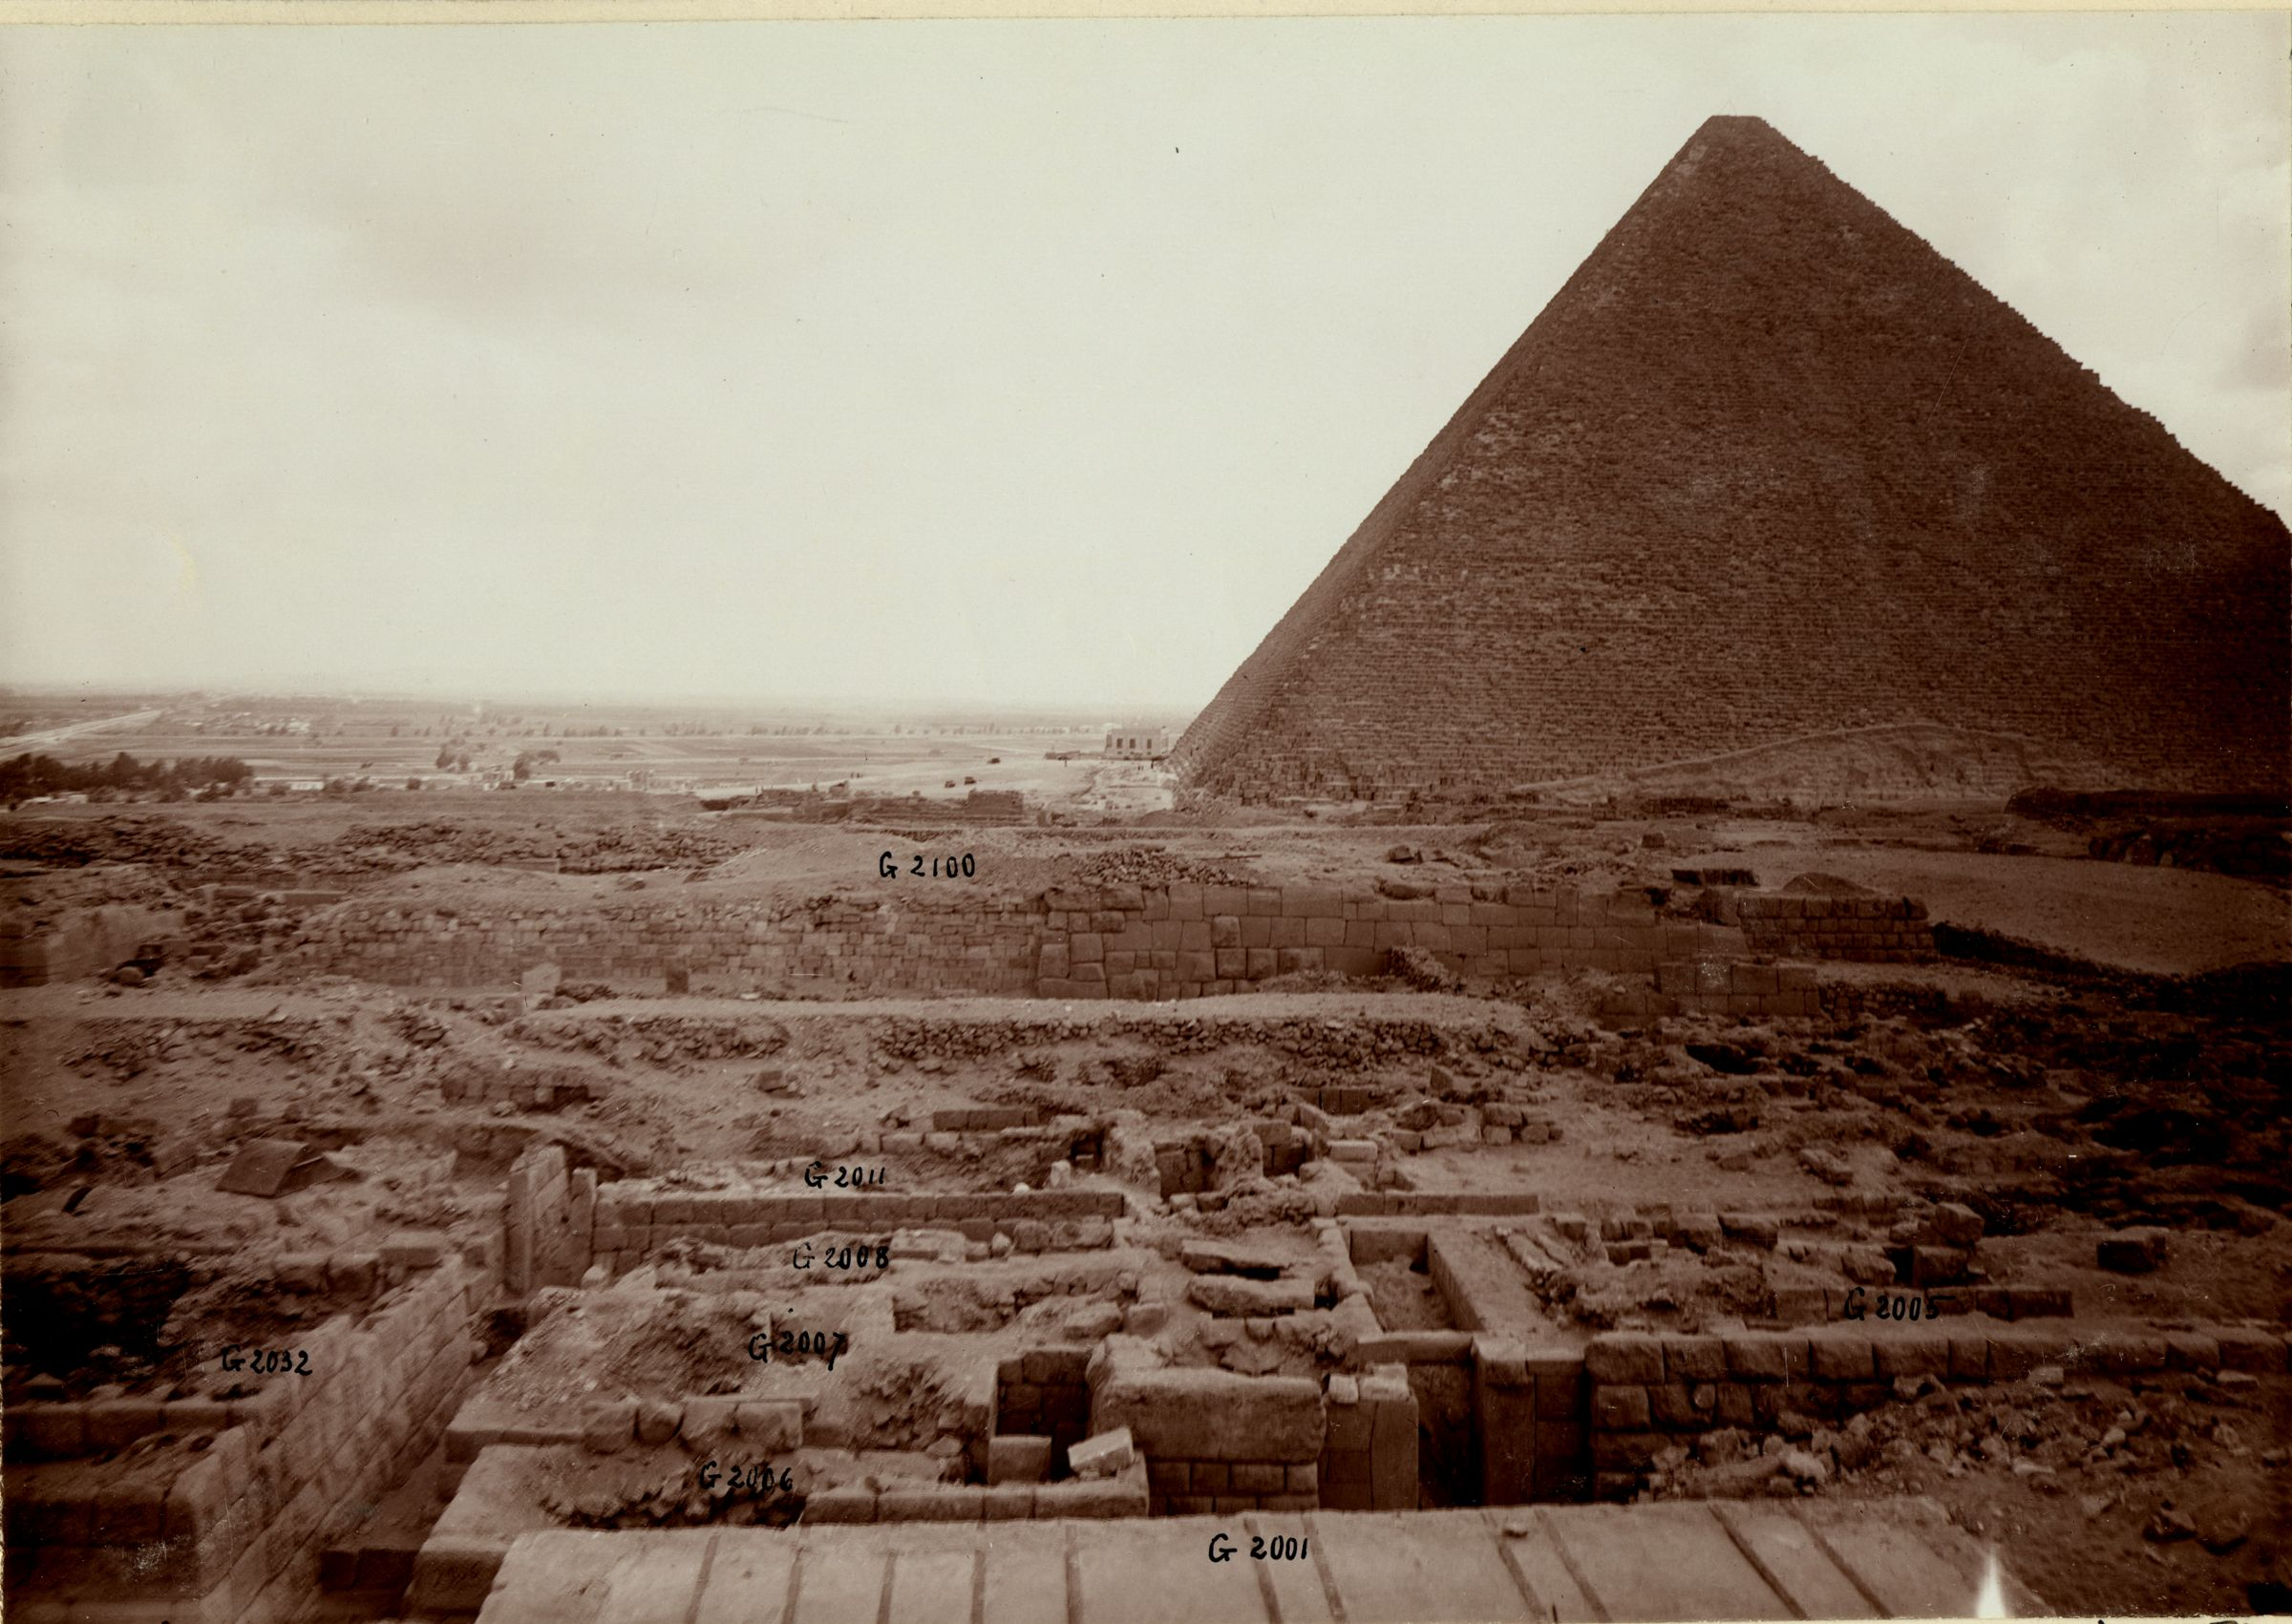 Western Cemetery: Site: Giza; View: G 2001, G 2032, G 2006, G 2007, G 2008, G 2001, G 2011, G 2005,  G 2100